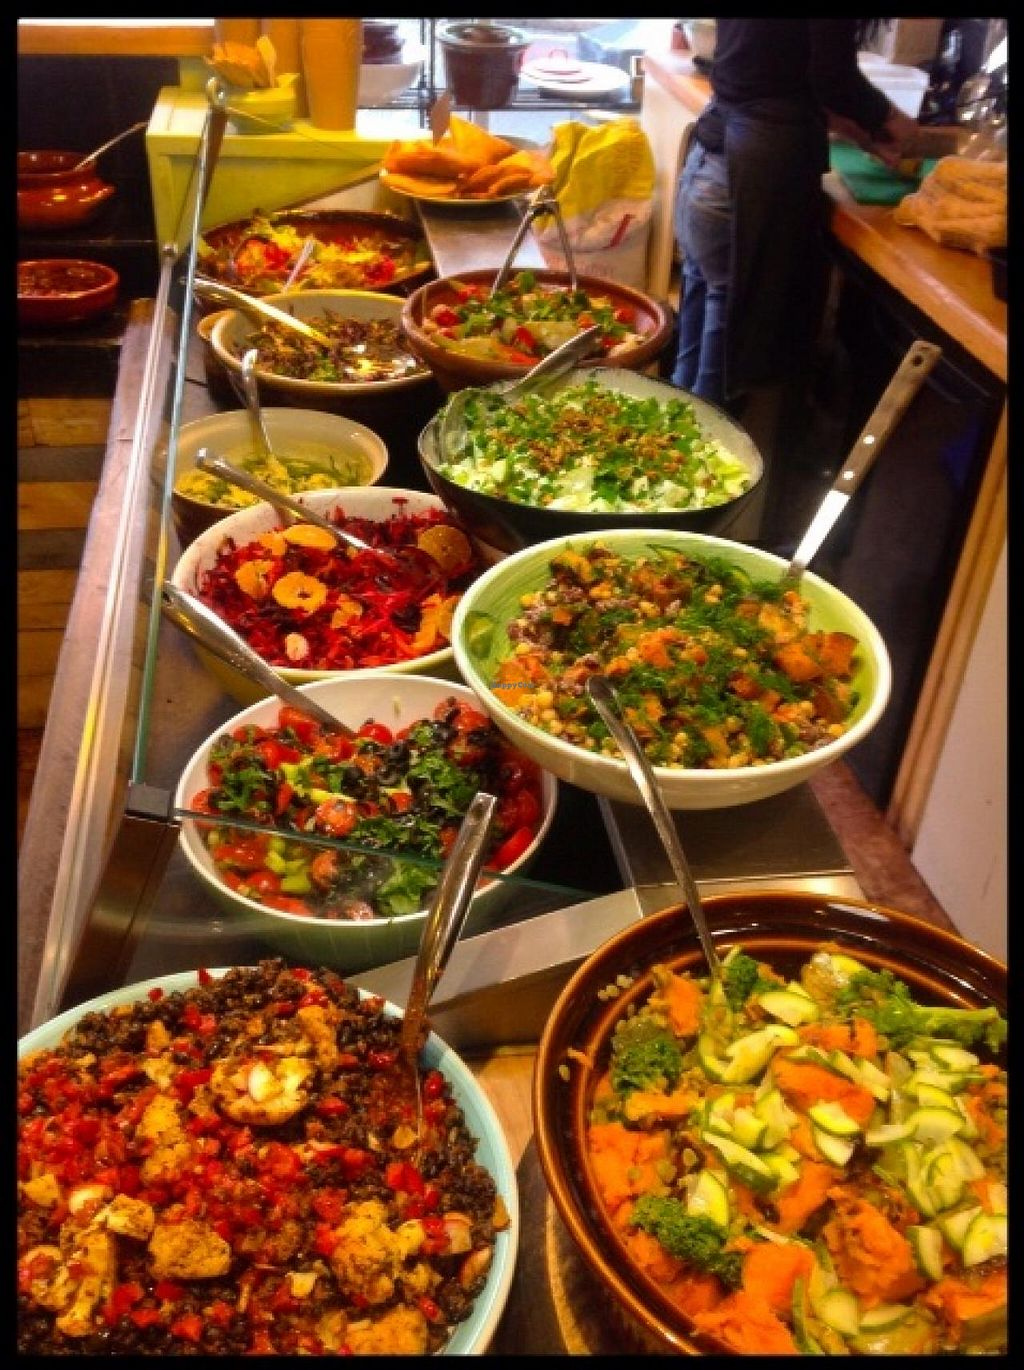 """Photo of Seeds to Totnes  by <a href=""""/members/profile/hack_man"""">hack_man</a> <br/>Colourful Delights - taken by Seeds 2 Totnes staff <br/> February 3, 2015  - <a href='/contact/abuse/image/55307/92158'>Report</a>"""